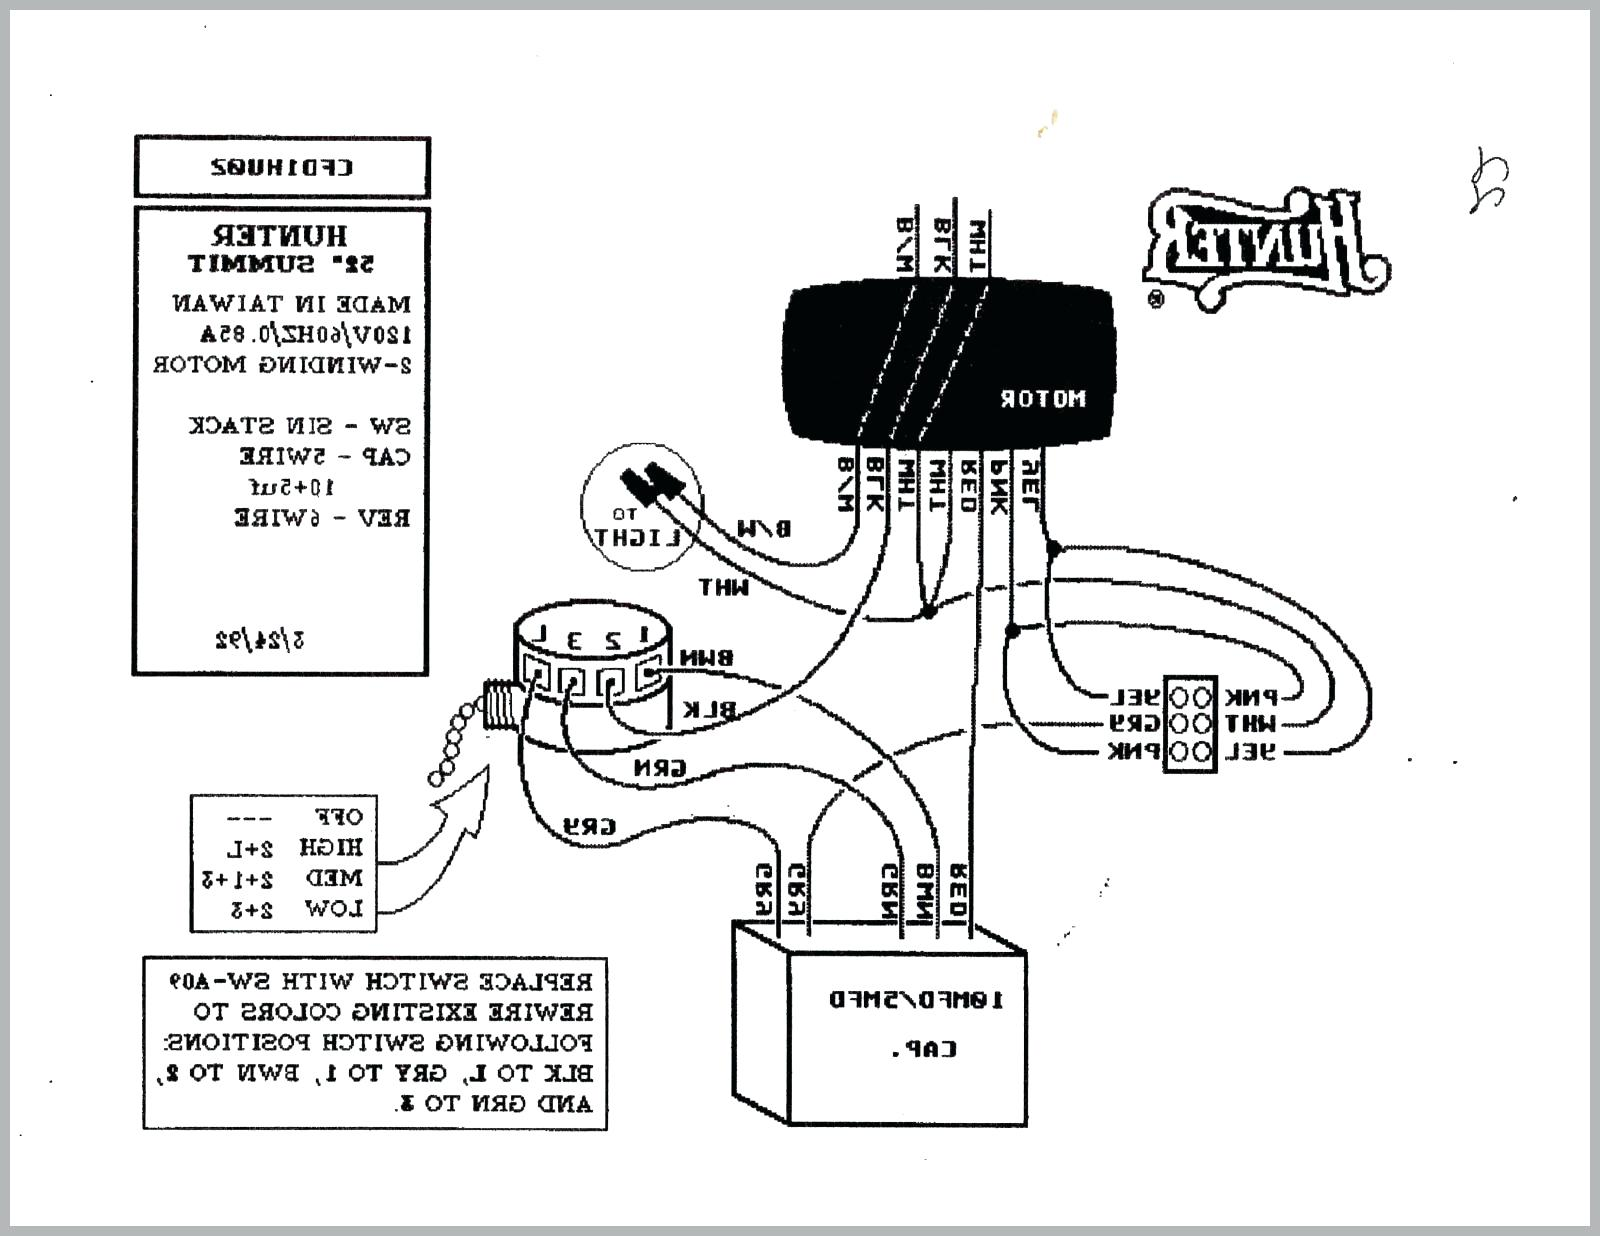 switch loop wiring diagram honeywell t5 wifi thermostat light drawing at getdrawings free for